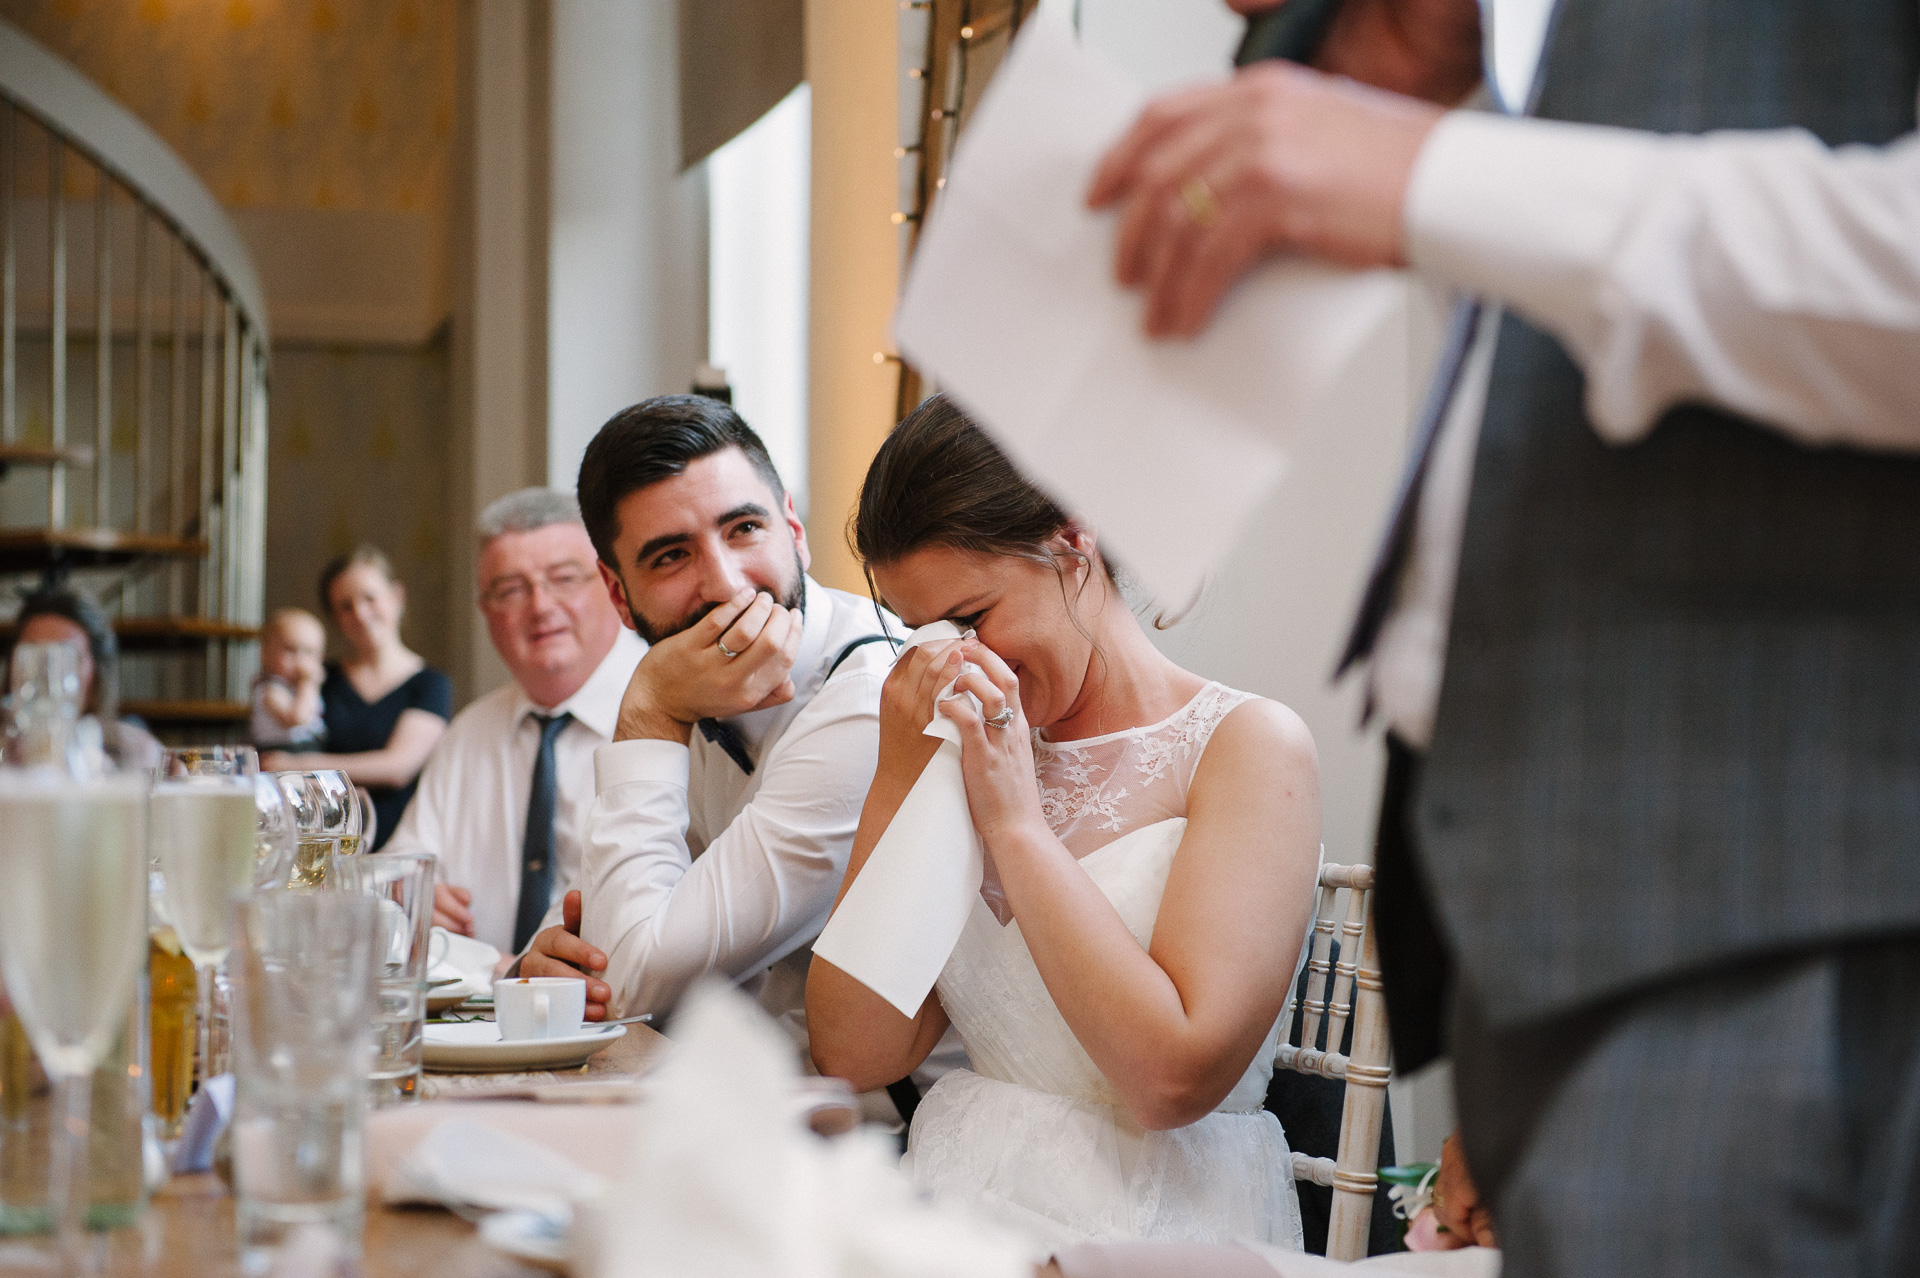 bride-wedding-tears-during-speeches.jpg